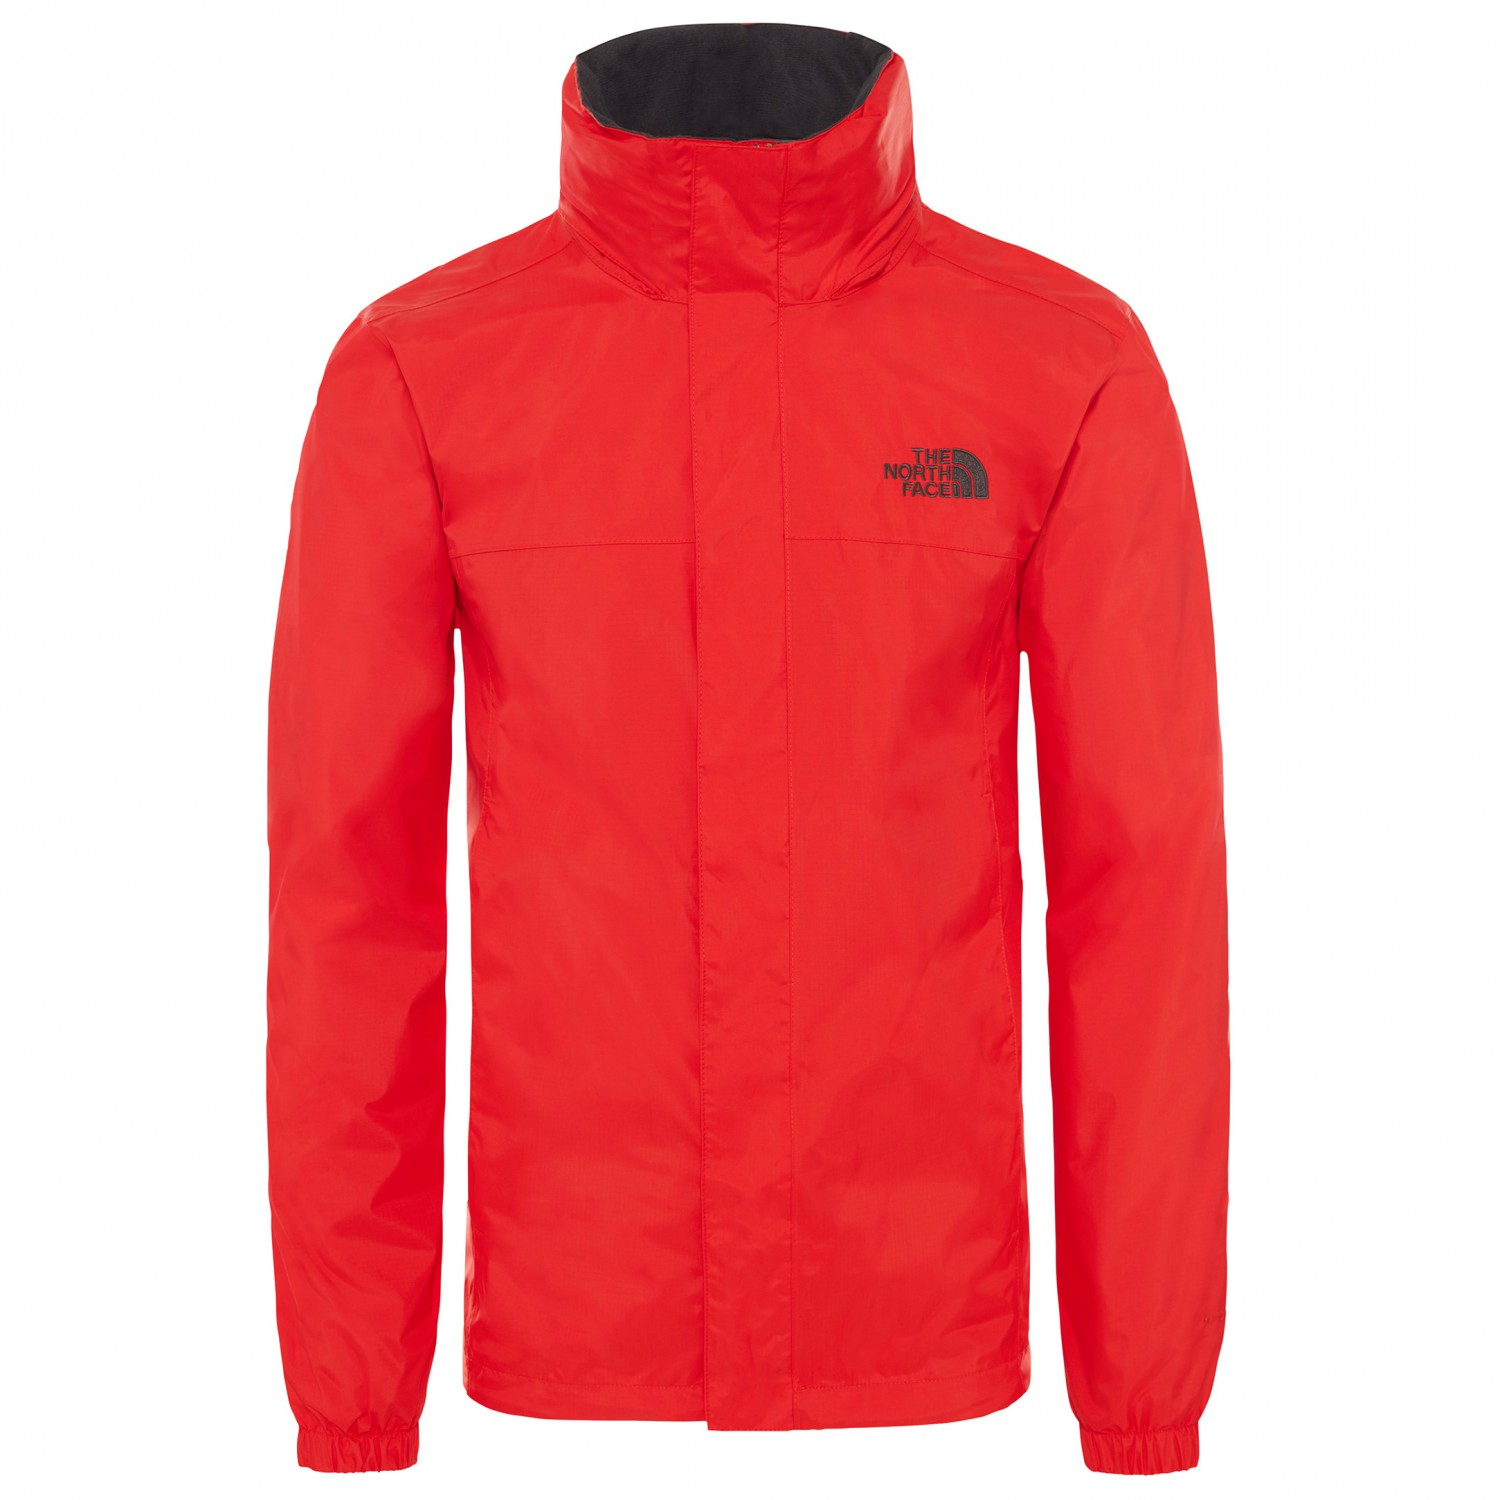 58838753e6 The North Face Resolve 2 Jacket - Veste imperméable Homme ...